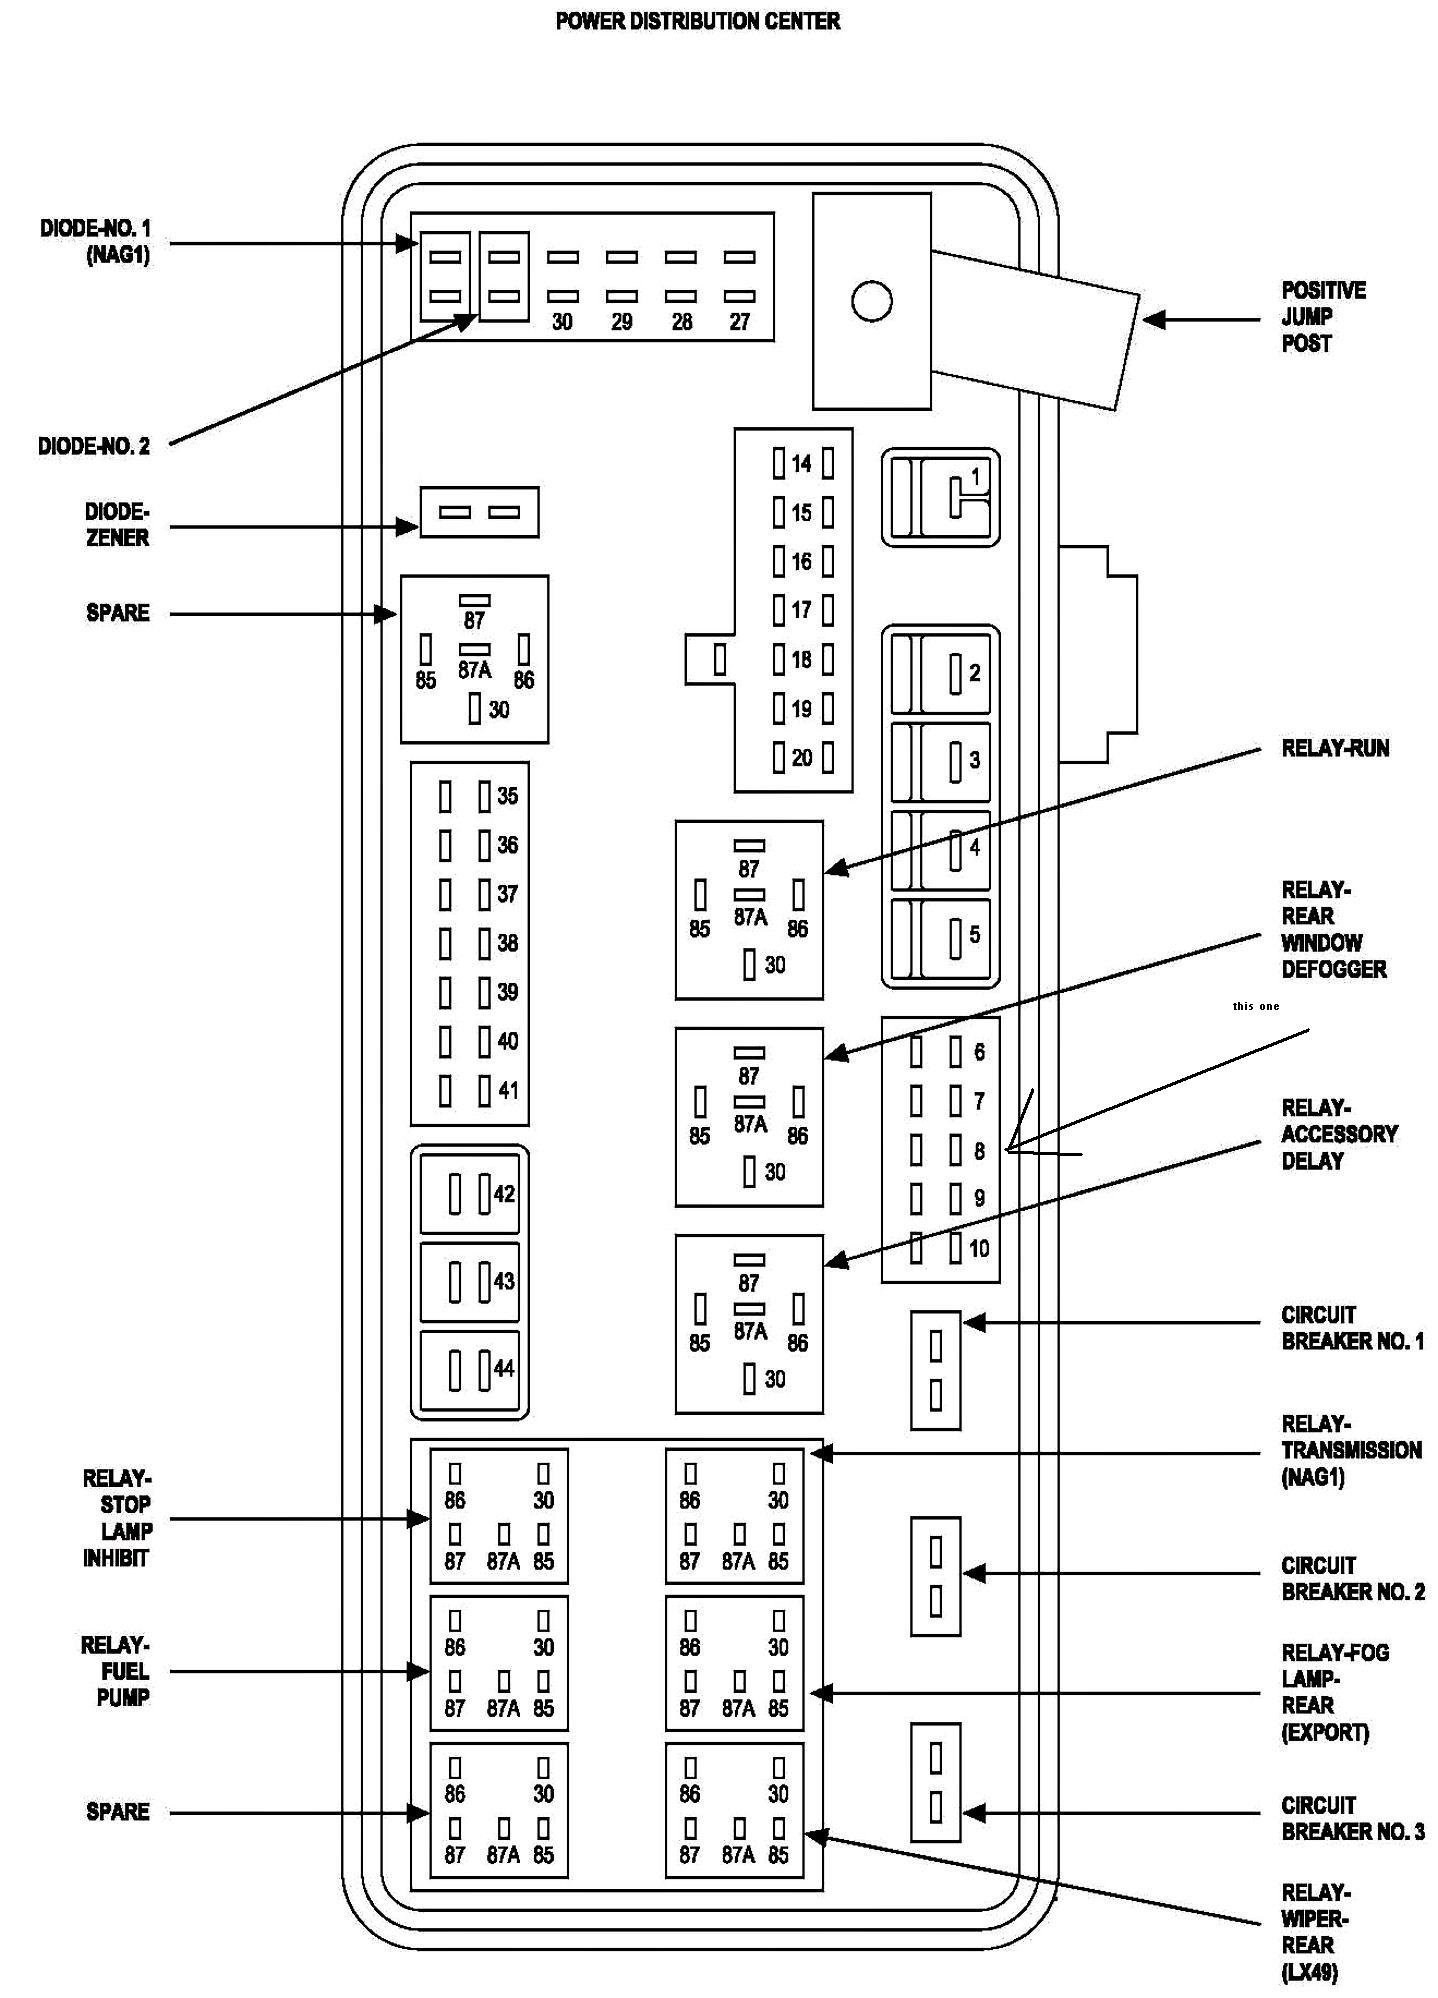 2006 Dodge 3500 Fuse Box - Wiring Diagram Detailed on 2011 dodge nitro wiring diagram, 2009 dodge ram 1500 wiring diagram, 2013 jeep wrangler unlimited wiring diagram, 1972 dodge van wiring diagram, 2007 gmc sierra 2500hd wiring diagram, 2012 dodge charger amp location, 2010 jeep commander wiring diagram, dodge challenger parts diagram, 2012 dodge charger tail light fuse, 2013 dodge avenger wiring diagram, 2013 chrysler 300 wiring diagram, 2010 dodge ram 2500 wiring diagram, 2012 dodge charger speaker sizes, 2011 lincoln mkx wiring diagram, 2001 dodge grand caravan wiring diagram, 2010 dodge ram 1500 wiring diagram, 1998 dodge intrepid wiring diagram, 2012 dodge charger suspension diagram, 2011 dodge ram 1500 wiring diagram, 2012 dodge avenger wiring diagram,